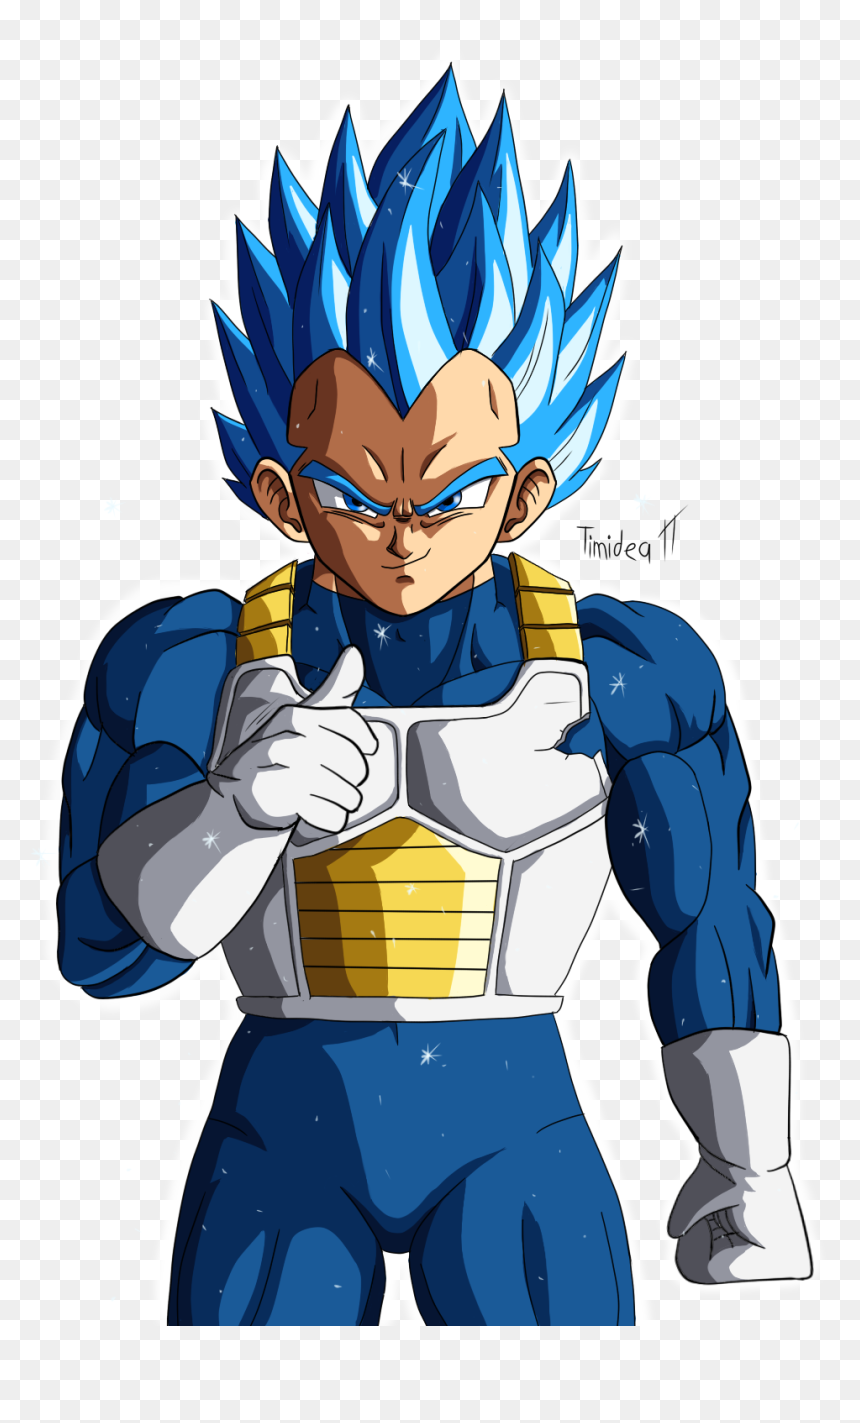 Dragon Ball Super Vegeta Png Transparent Png Free Download On Dlf Pt Find More High Resolution Pngs Cliparts Silhouettes I Super Vegeta Dragon Ball Vegeta